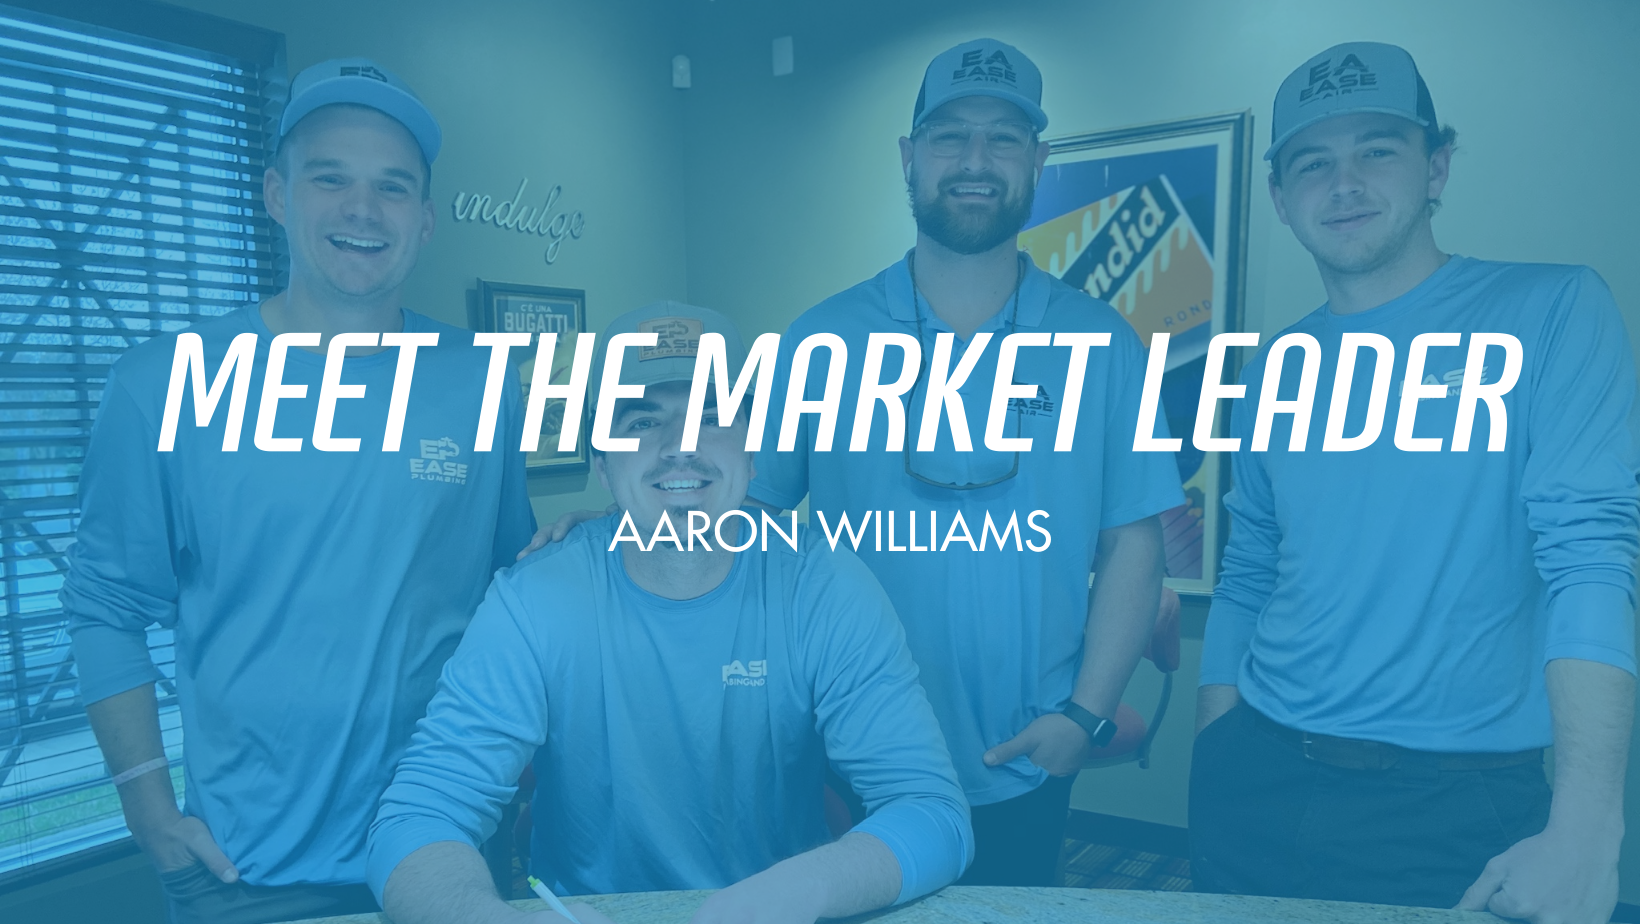 Ease Plumbing and Air Introduces Aaron Williams as the Neighborhood Market Leader for the Greenville Branch of Ease Plumbing